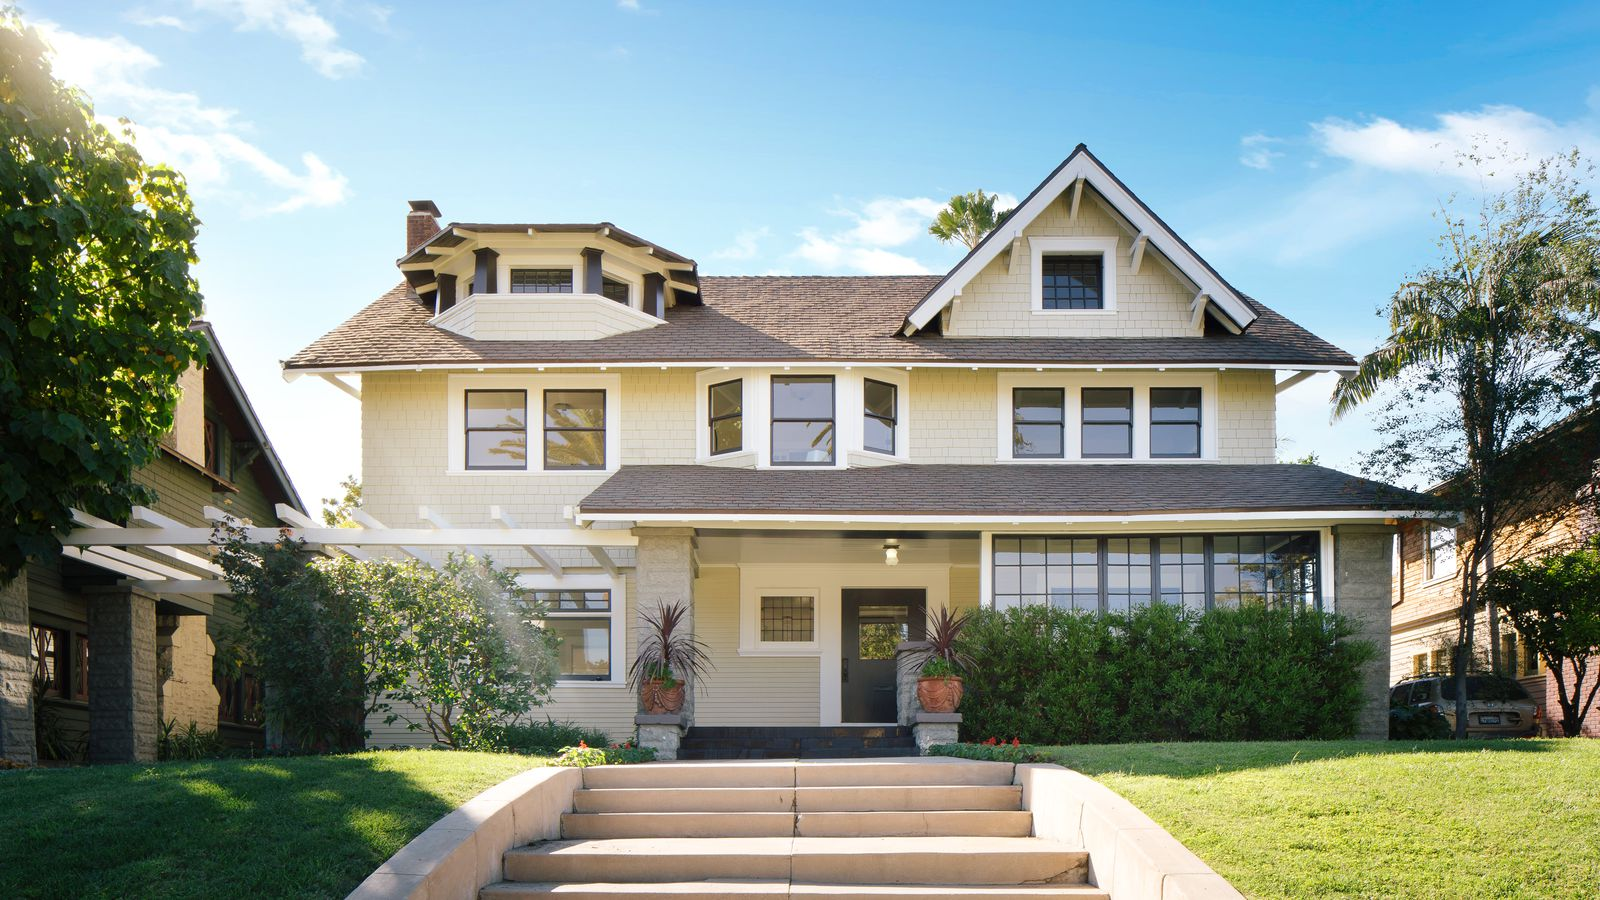 Elegant bungalow in one of la s historic districts asks 2 for Craftsman style bungalow for sale